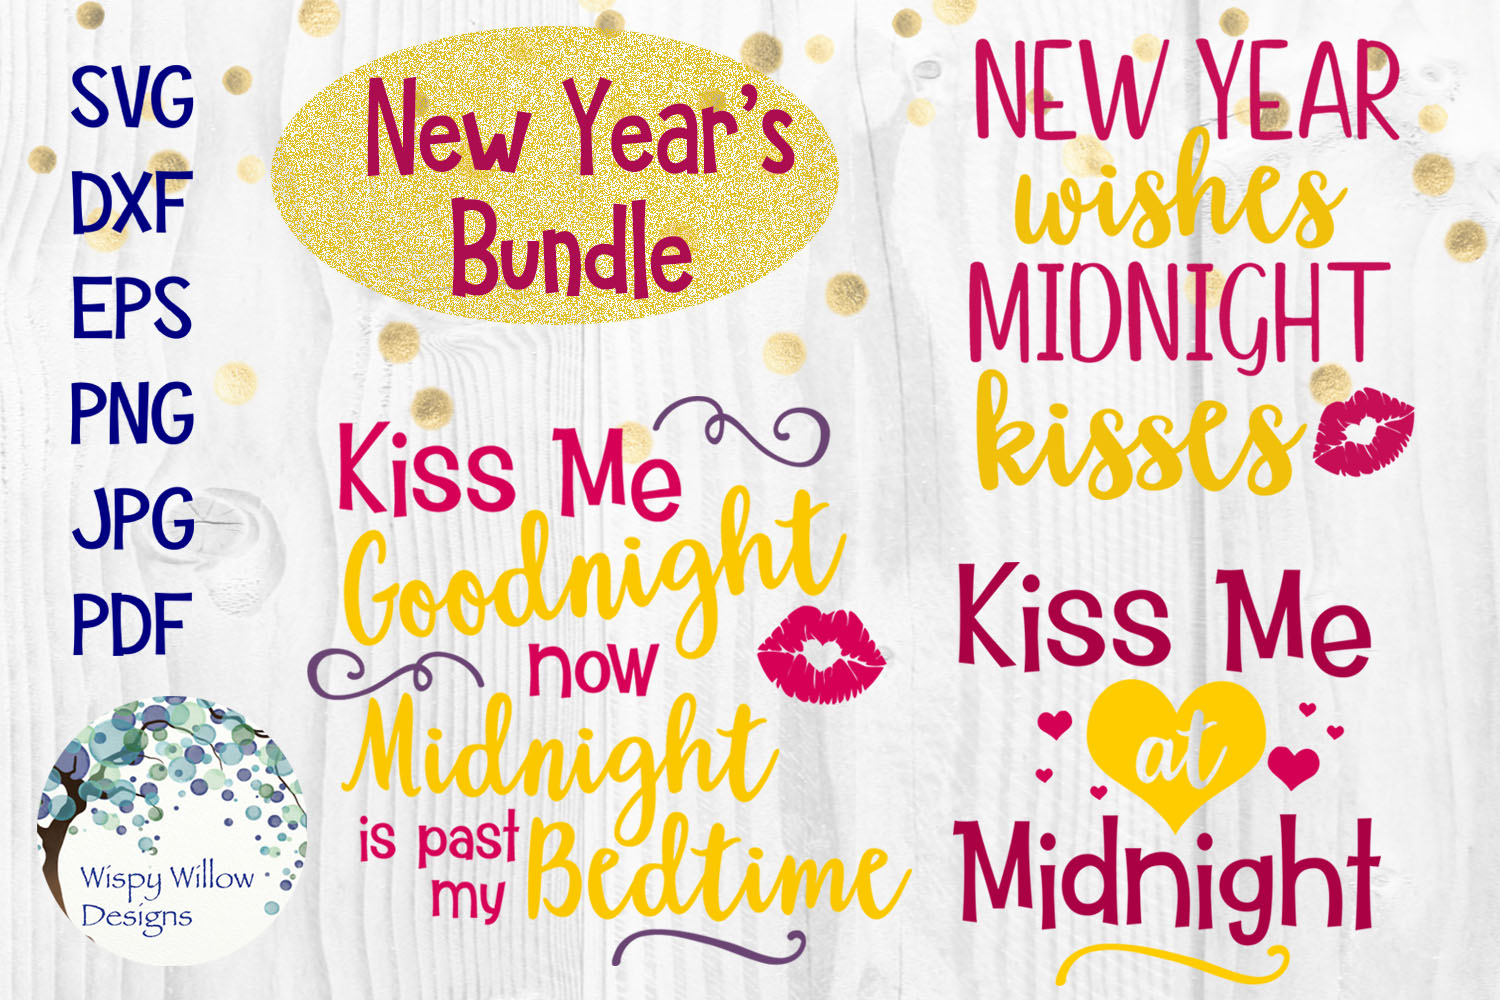 New Year's Eve SVG Cut File Bundle | Kiss Me at Midnight SVG example image 1